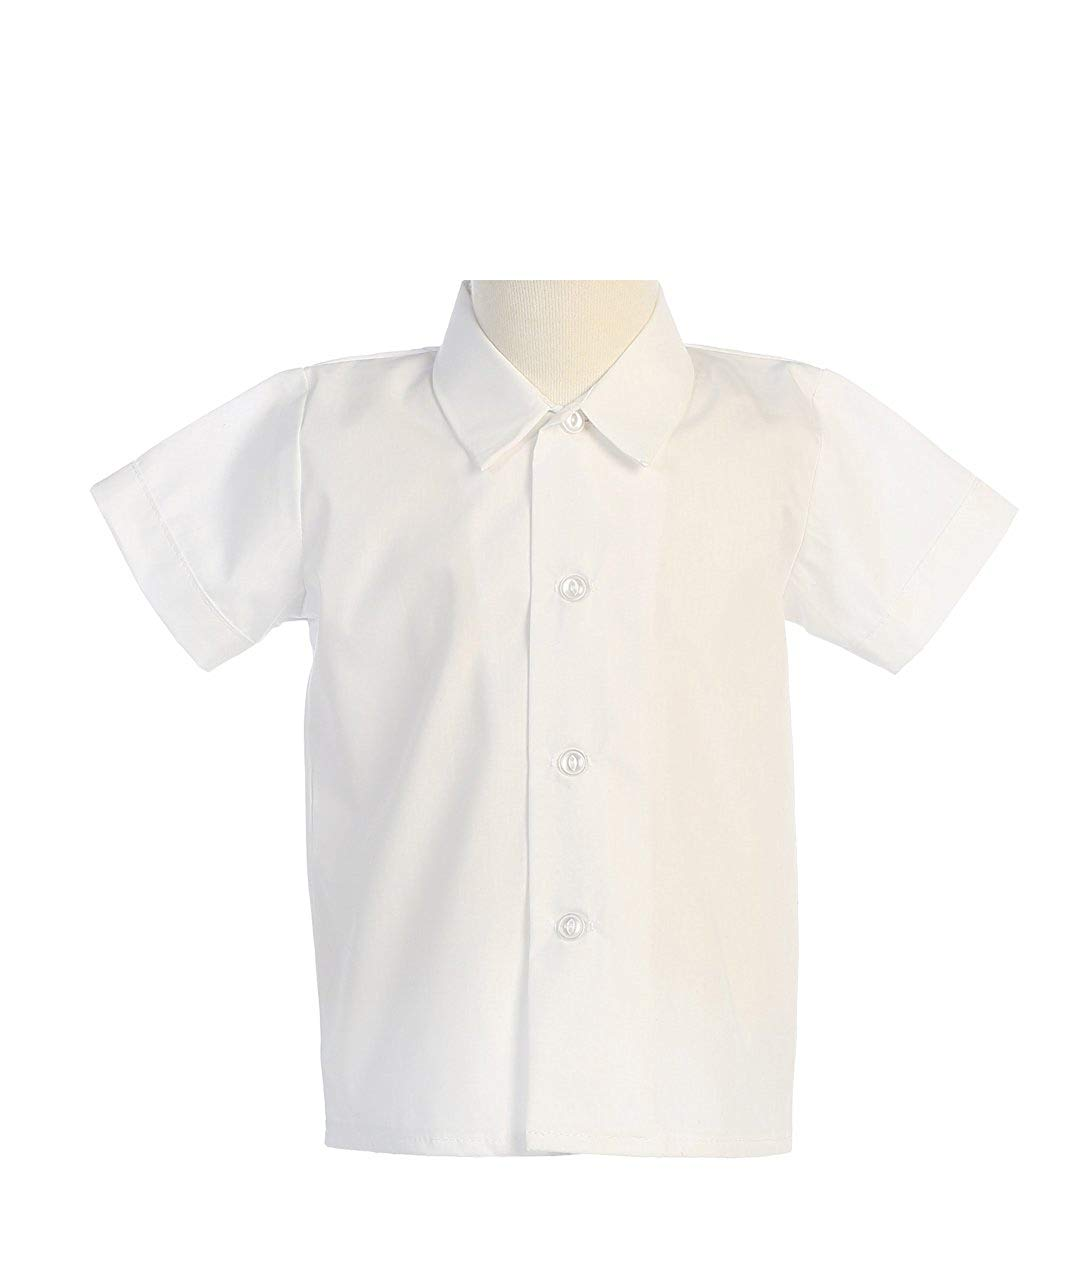 f91d9b49e7bd Get Quotations · Lito Baby Boys Short Sleeved Simple Dress Shirt White or  Ivory - Infant to Toddler